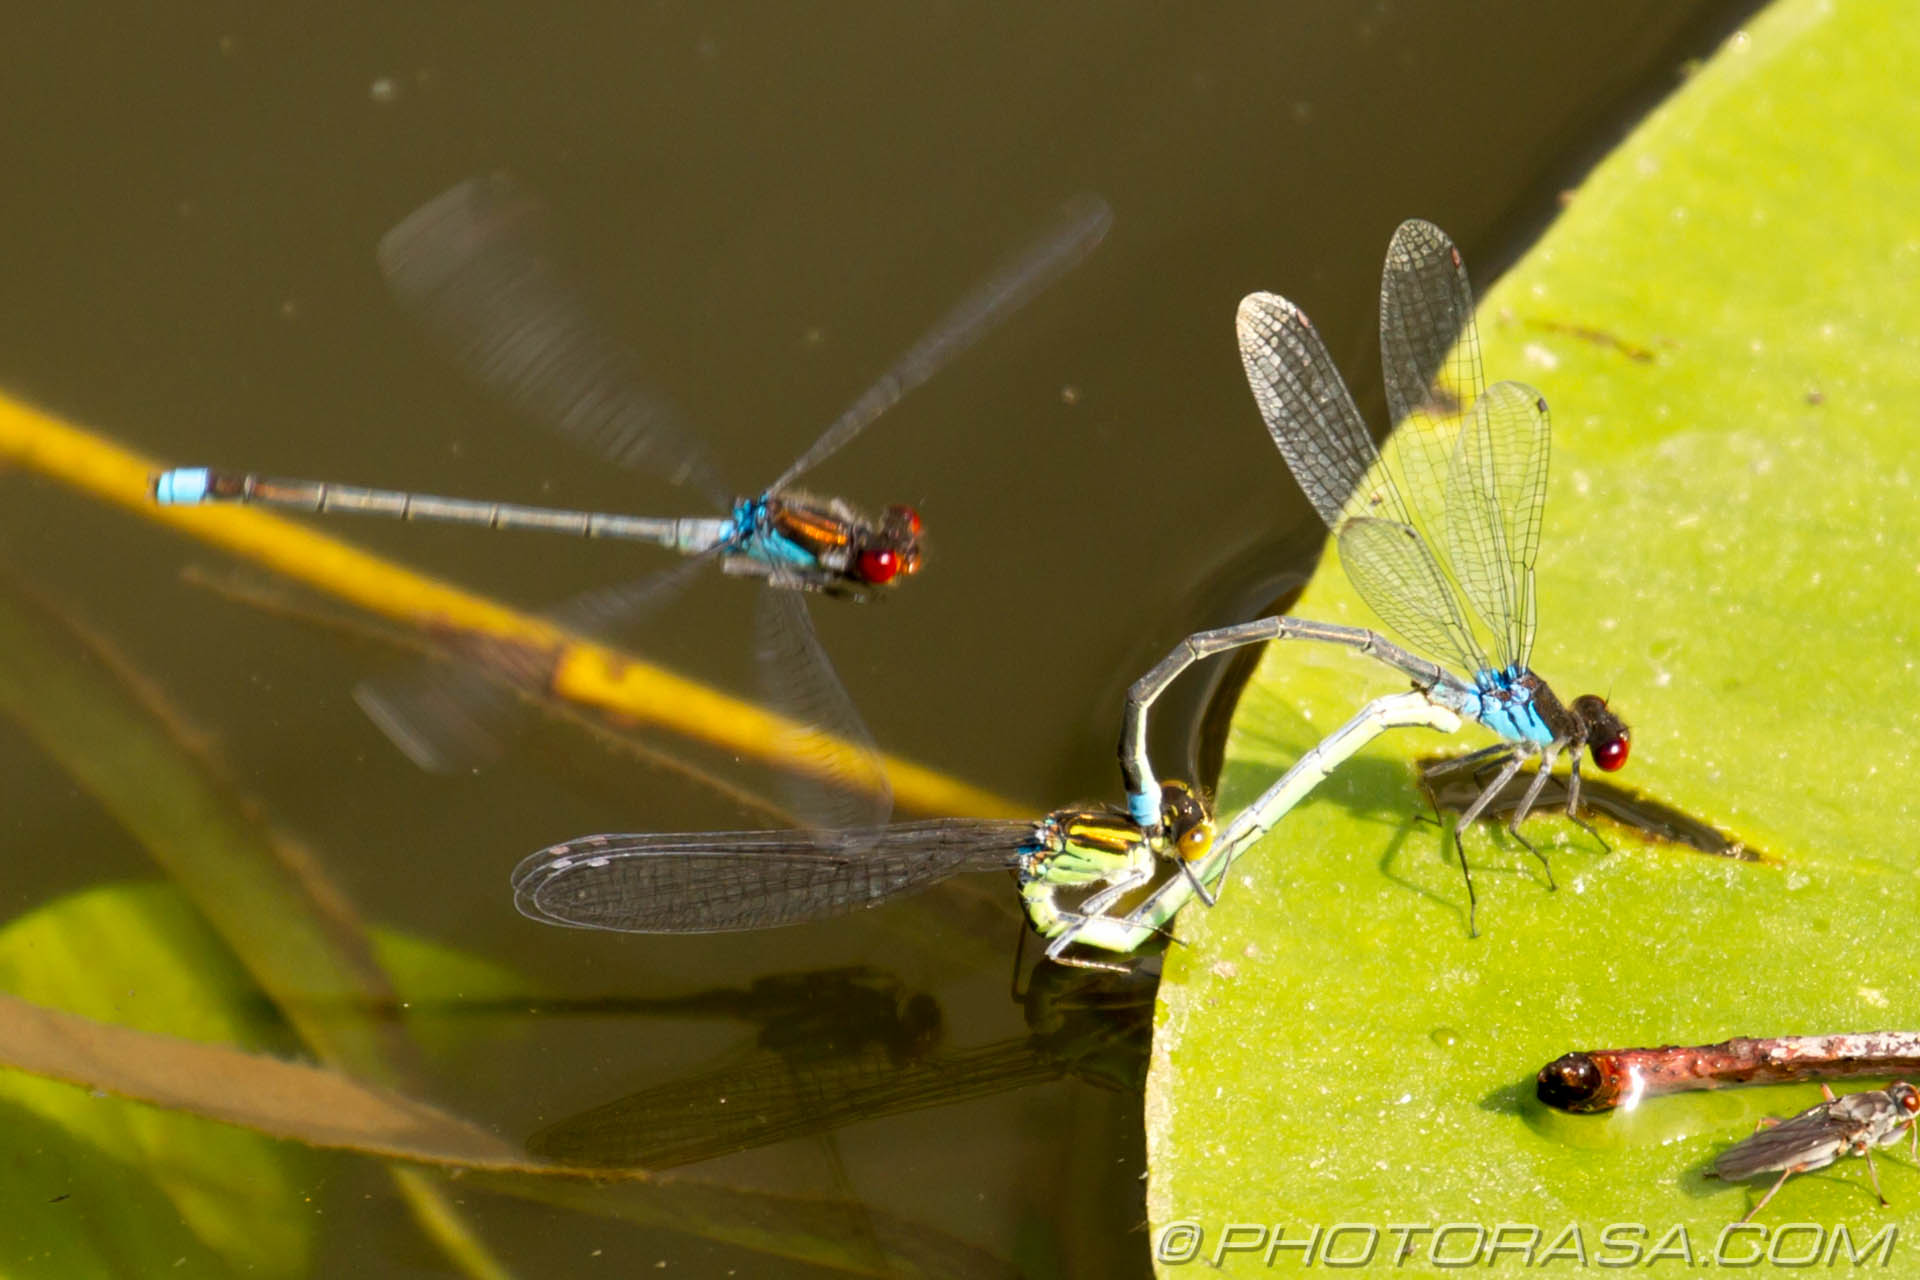 https://photorasa.com/damselflies/damsel-flies-attacked-while-mating/